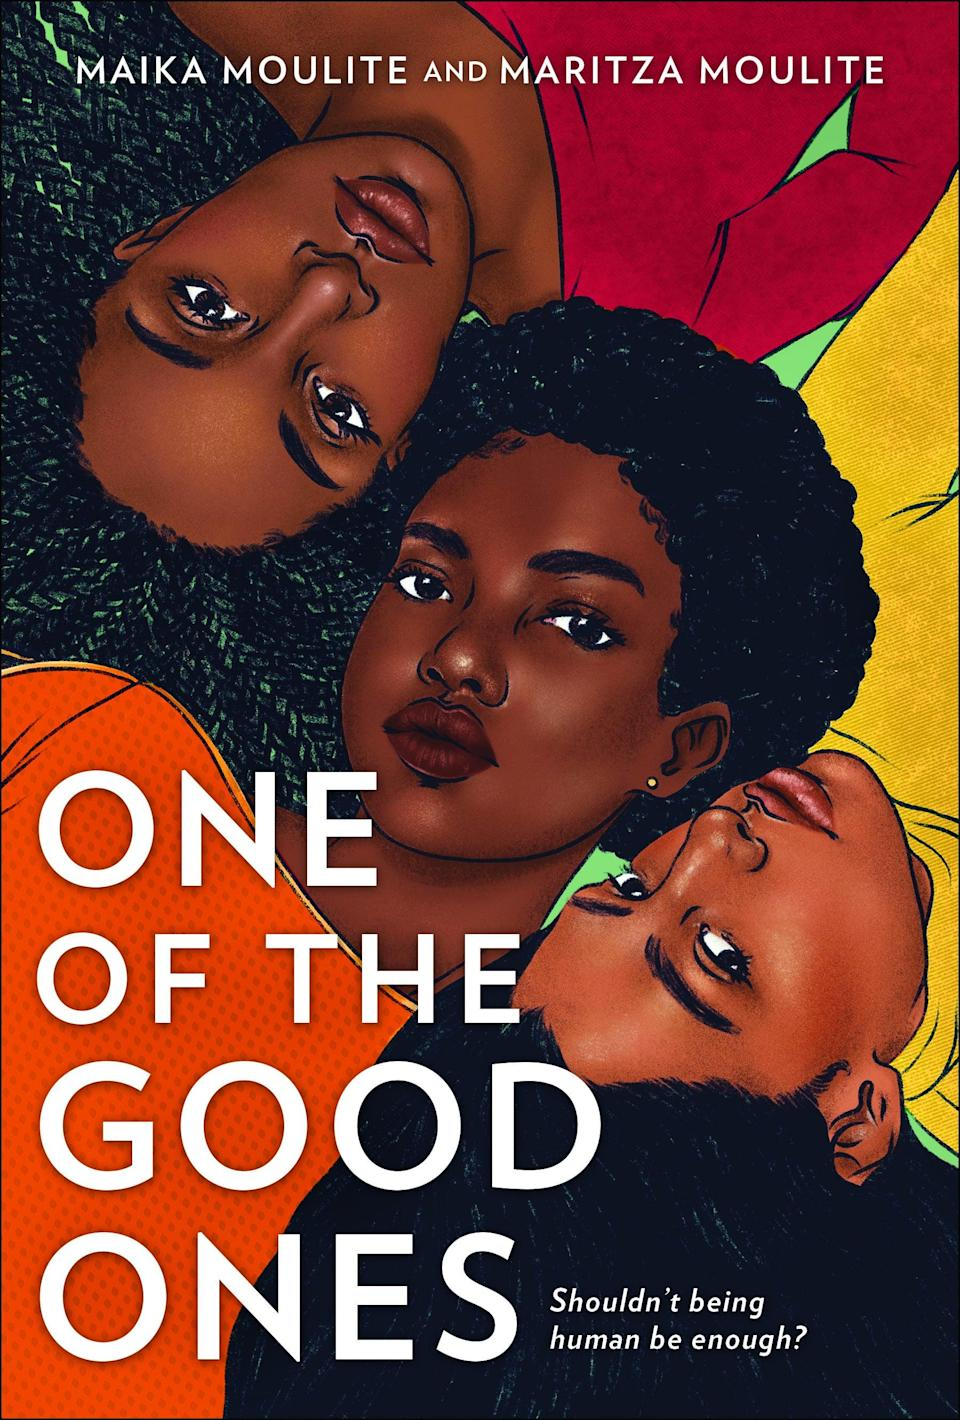 <p>Written by sisters Maika Moulite and Maritza Moulite, <span><strong>One of the Good Ones</strong></span> is set to be one of 2021's most powerful YA novels. Sisters Happi and Genny are left reeling when their activist sister Kezi is killed as a result of police brutality. In the aftermath of Kezi's death, the sisters become frustrated by the way the world talks about her, and they set out on a road trip to memorialize their sister in their own way - and make an unexpected discovery in the process.</p> <p><em>Out Jan. 5</em></p>